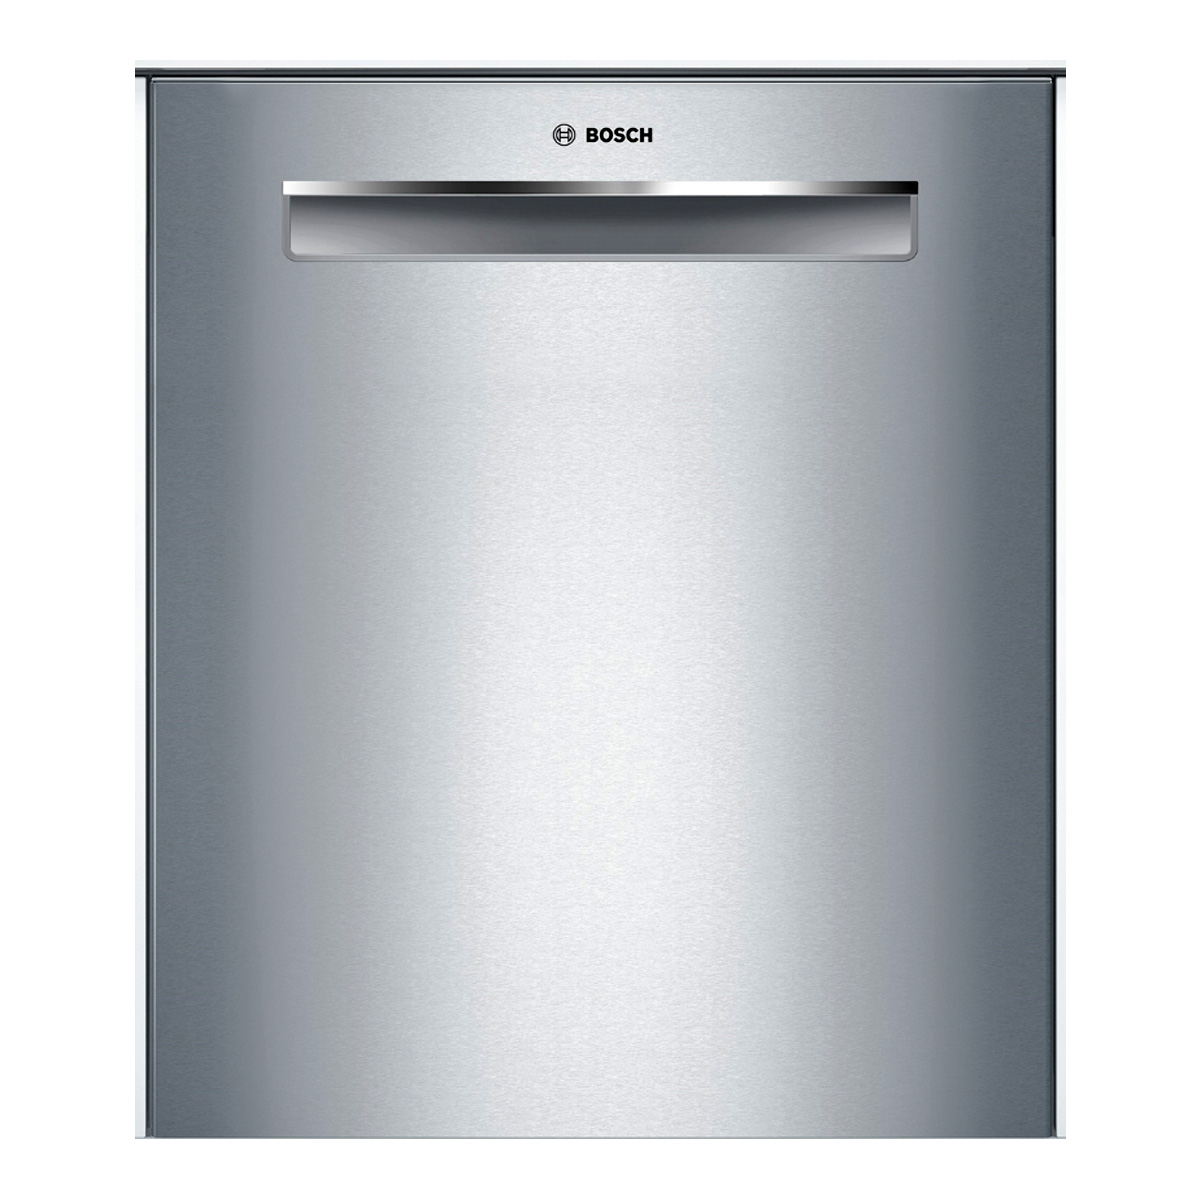 Bosch Under Bench Dishwasher SMP68M05AU